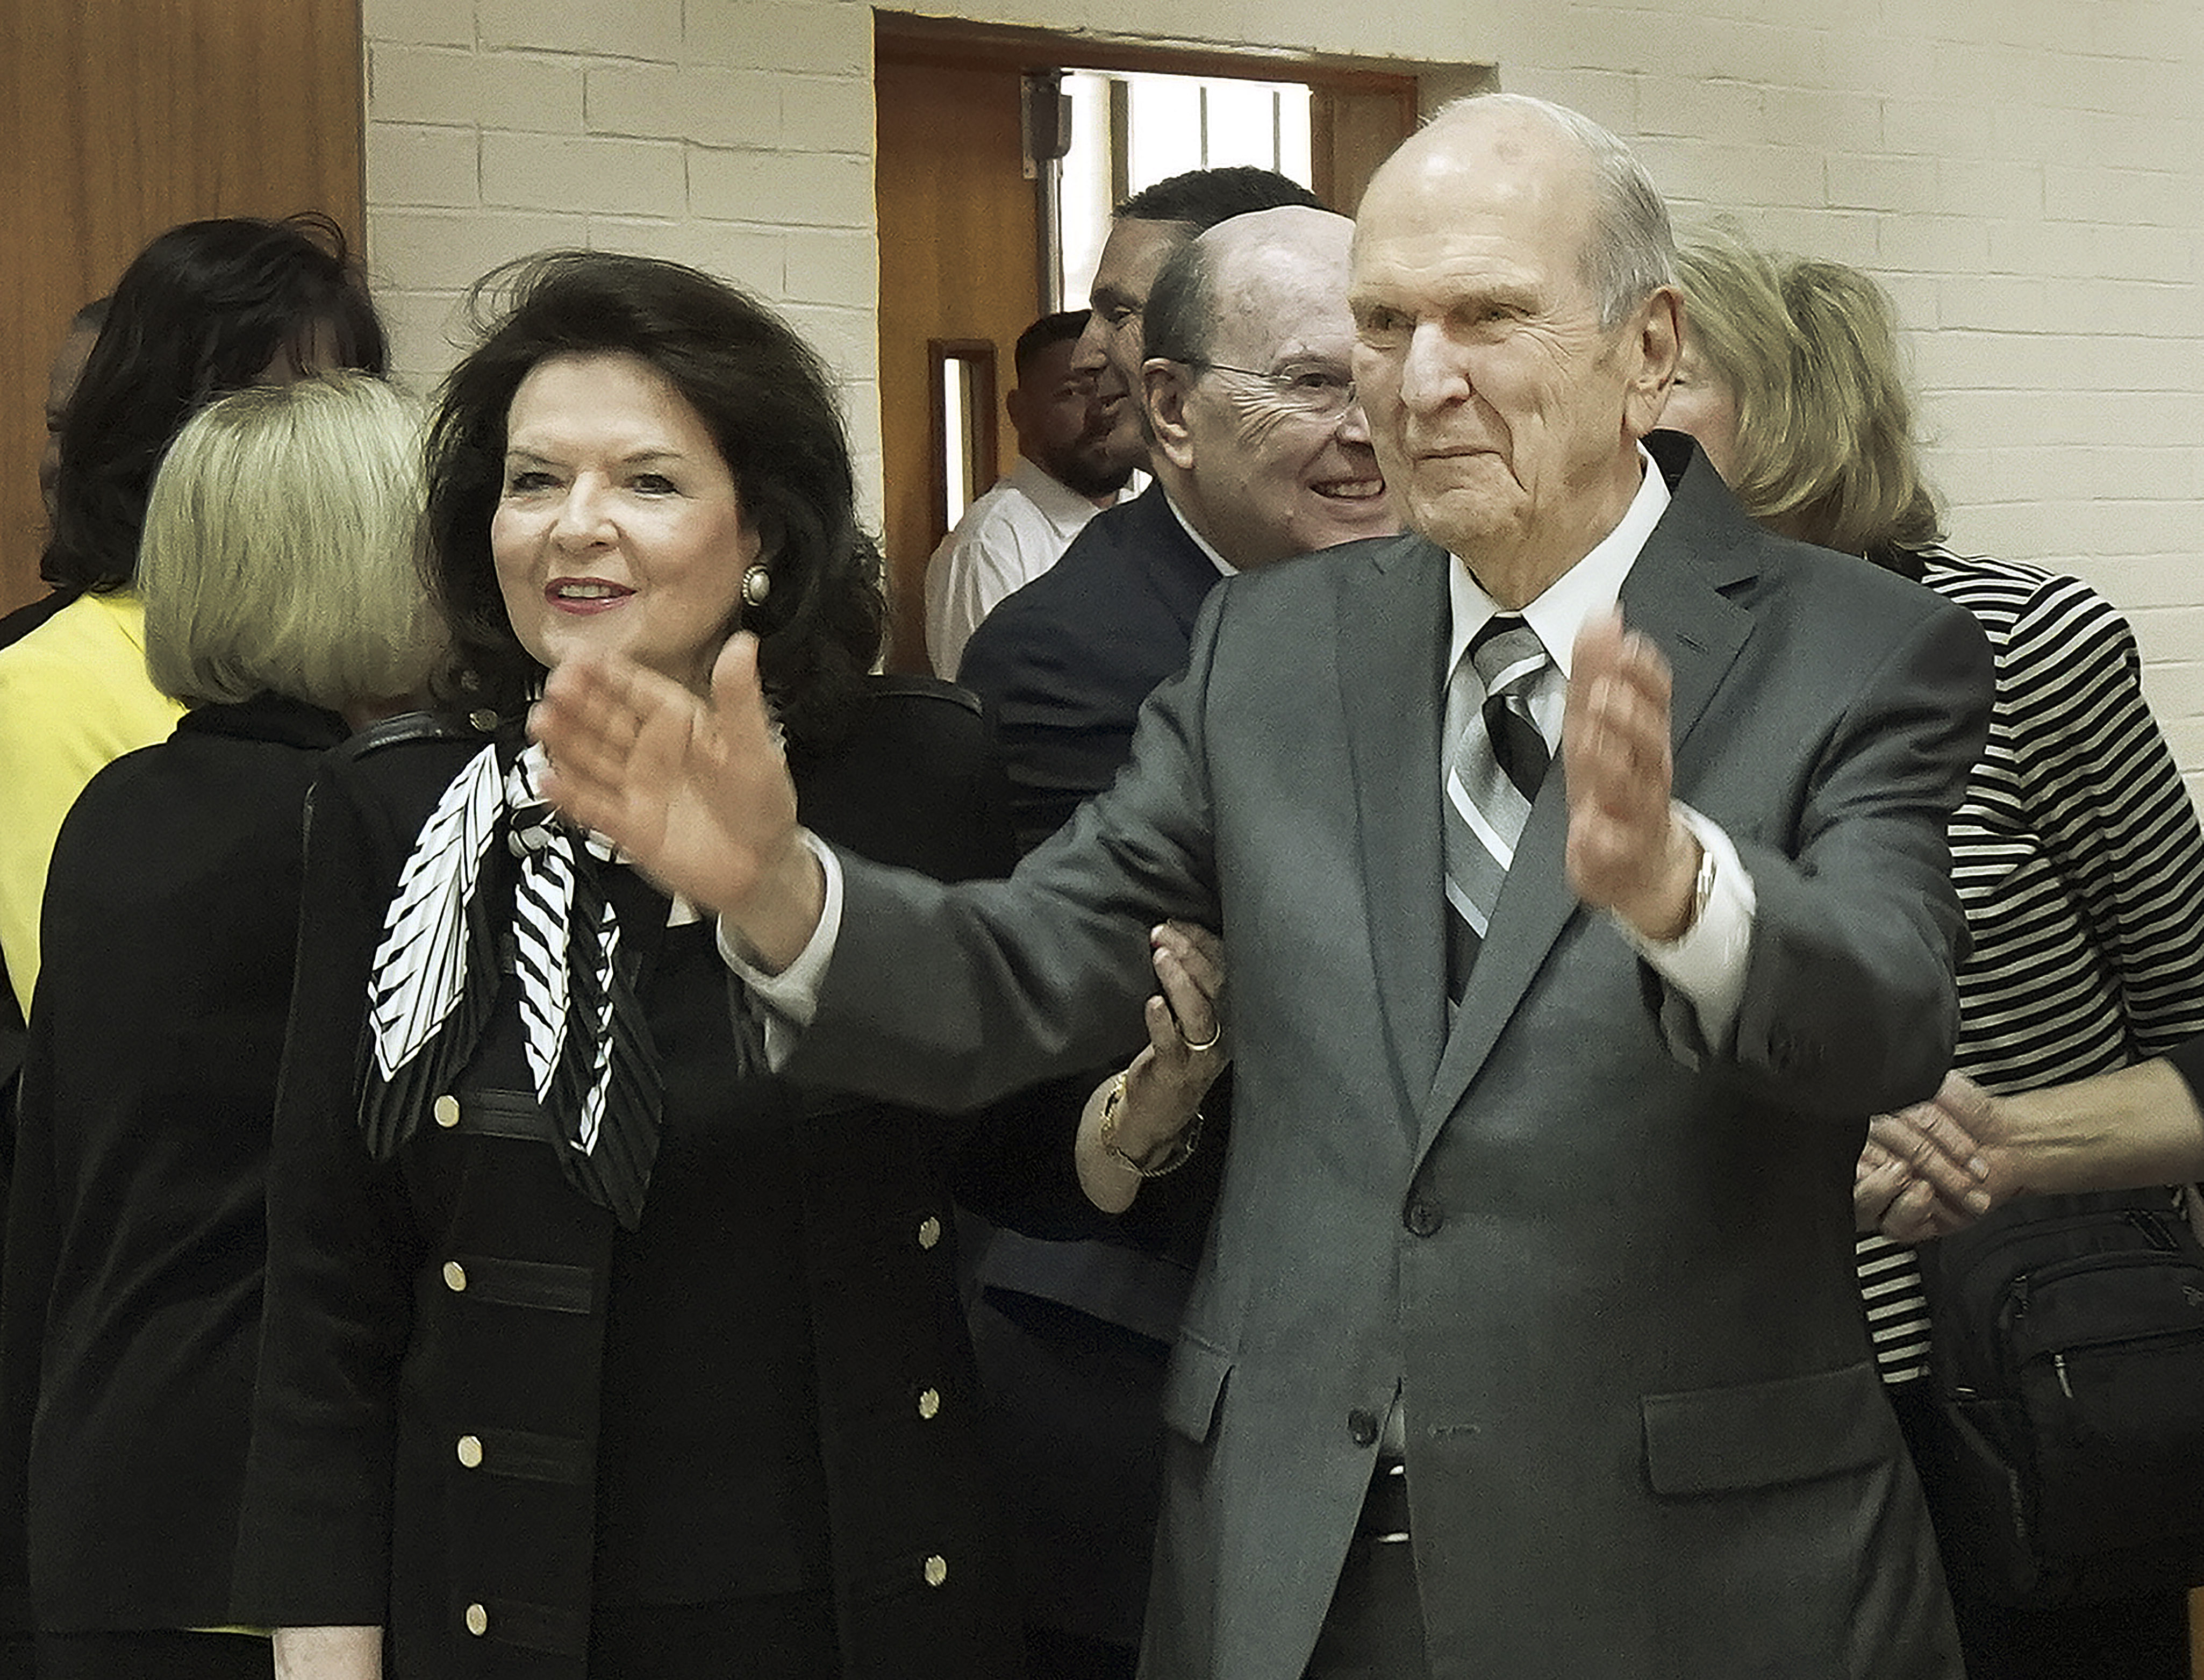 President Russell M. Nelson of The Church of Jesus Christ of Latter-day Saints and his wife, Sister Wendy Nelson, react to missionaries before a Brazil Brasilia Mission meeting in Brasilia, Brazil, on Friday, Aug. 30, 2019.